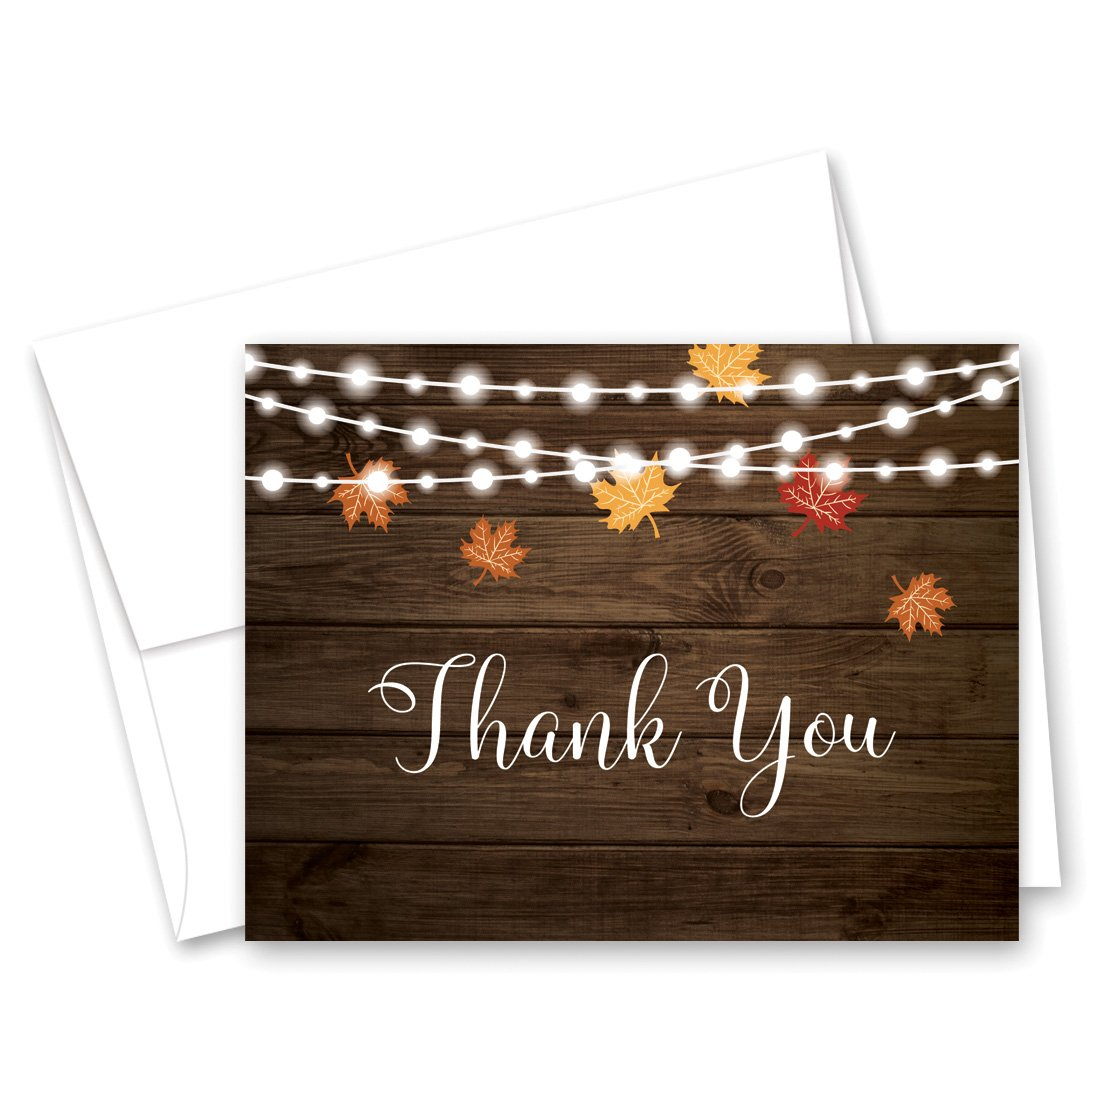 50 cnt Autumn Leaves on Rustic Wood Thank You Cards and Envelopes by MyExpression.com